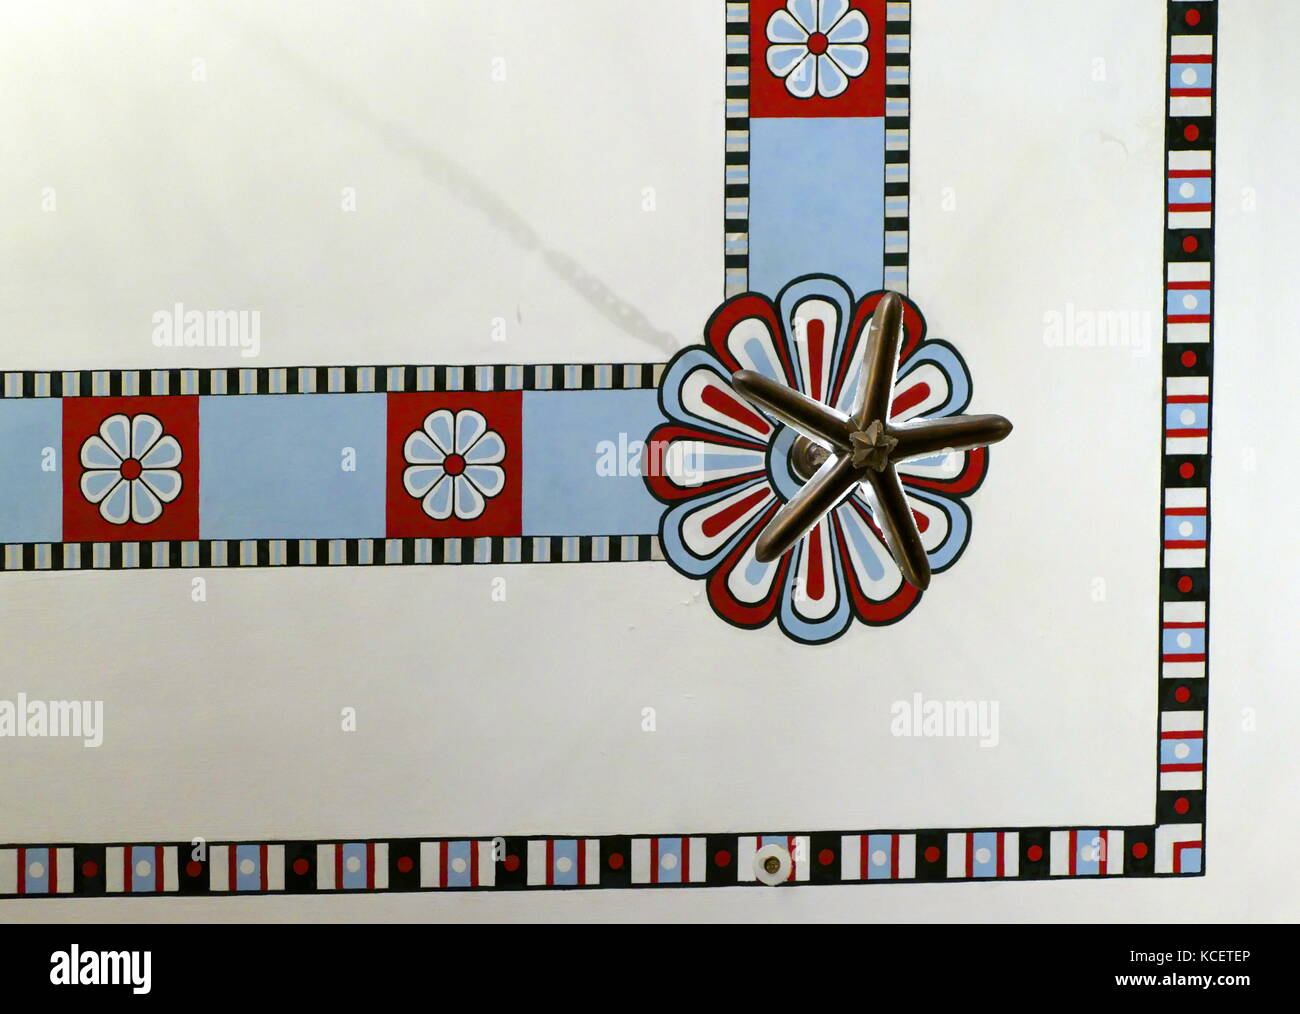 Art Deco decoration still preserved at the King David Hotel, Jerusalem, Israel dating to its' opening in 1931 - Stock Image